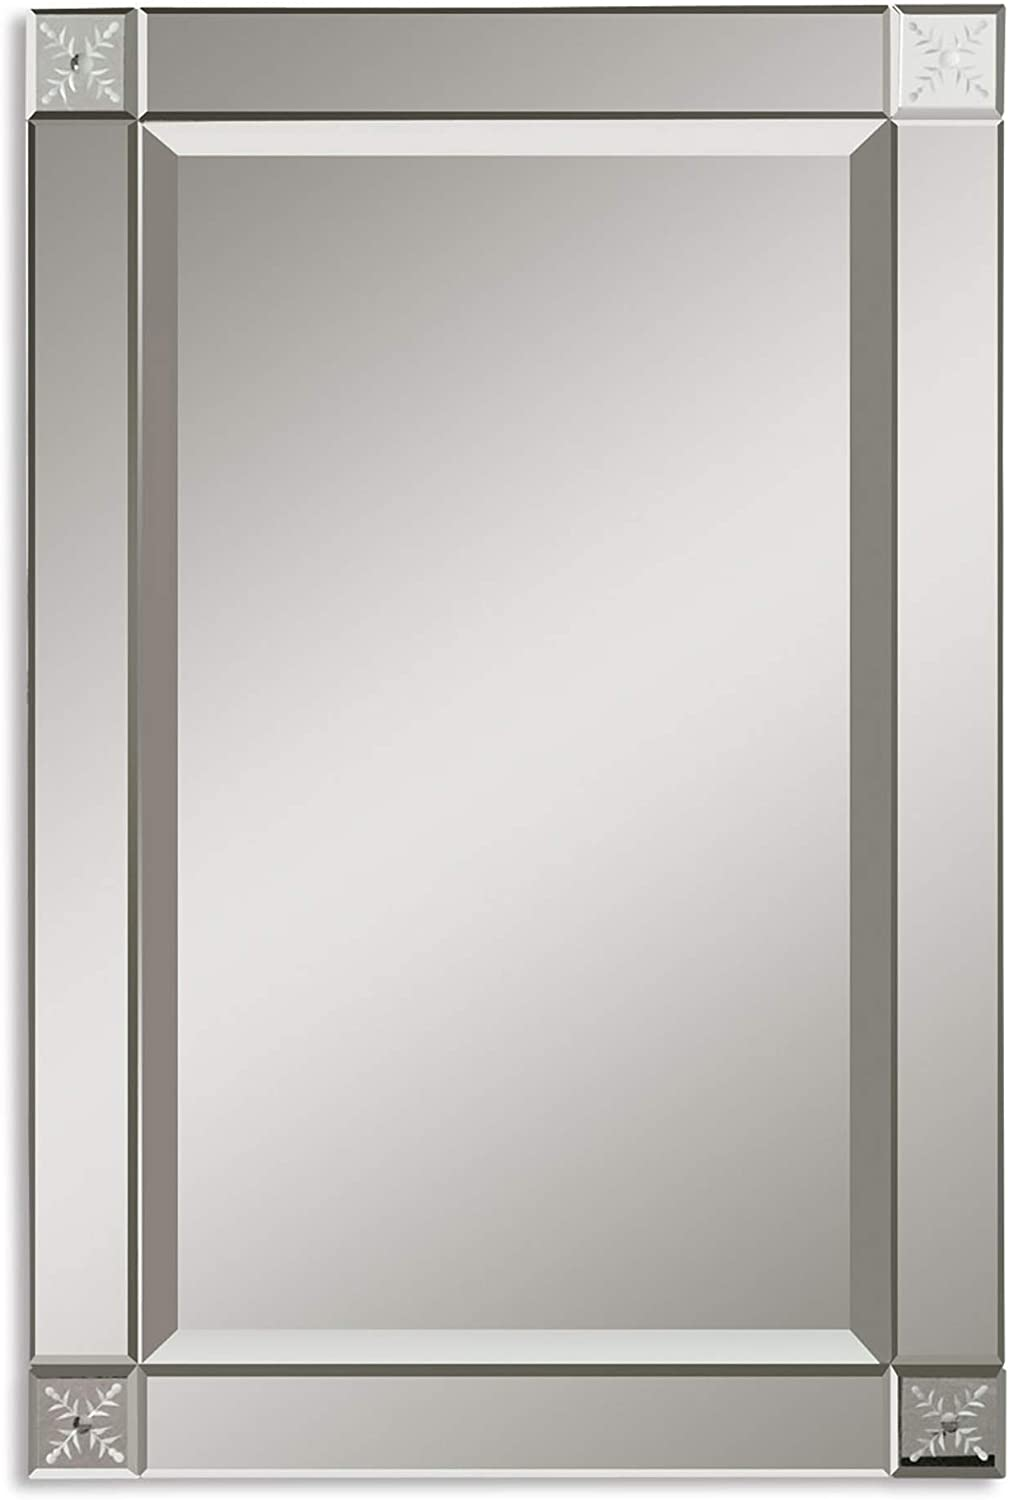 Amazon Com Diva At Home 31 Floral Etched Unframed Beveled Rectangular Wall Mirror Home Kitchen